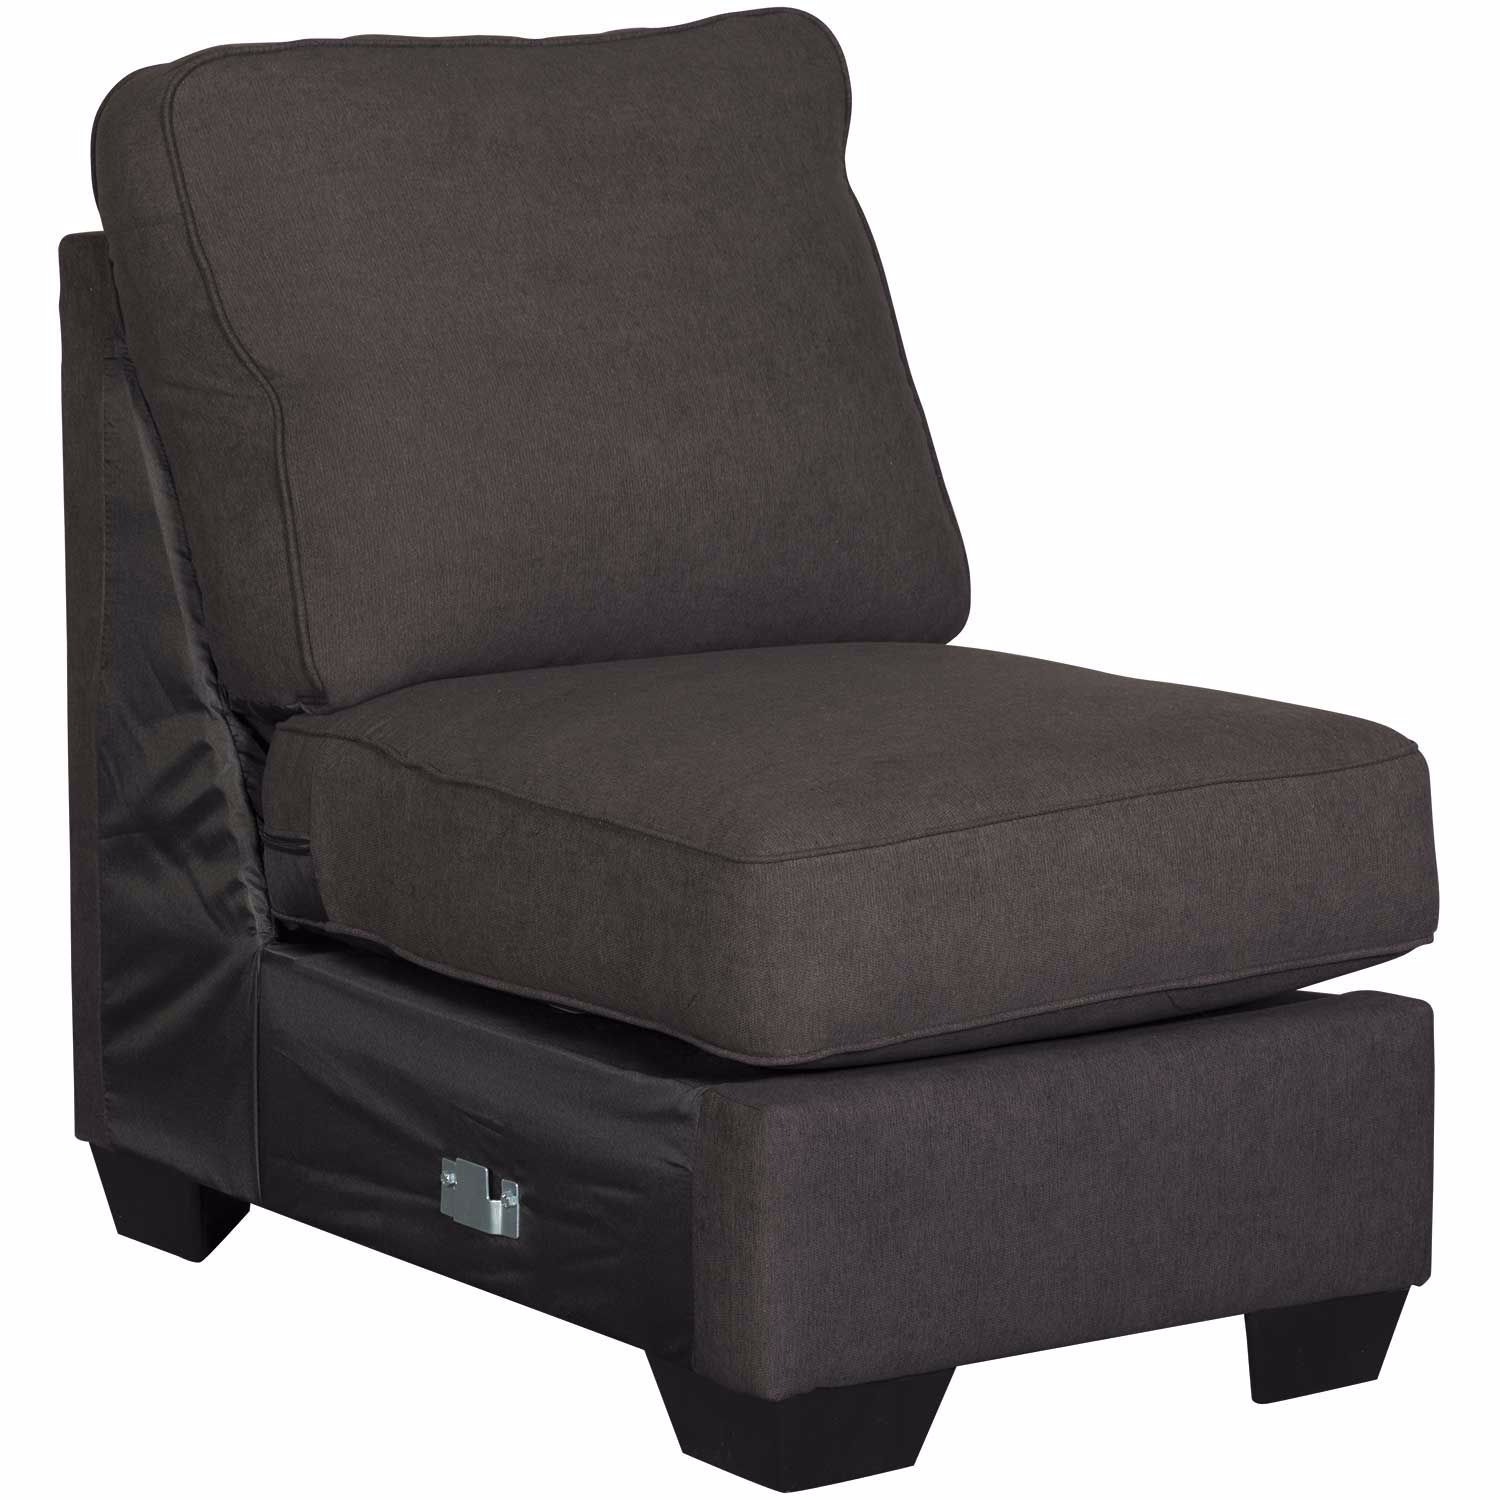 Picture of Charcoal Armless Chair